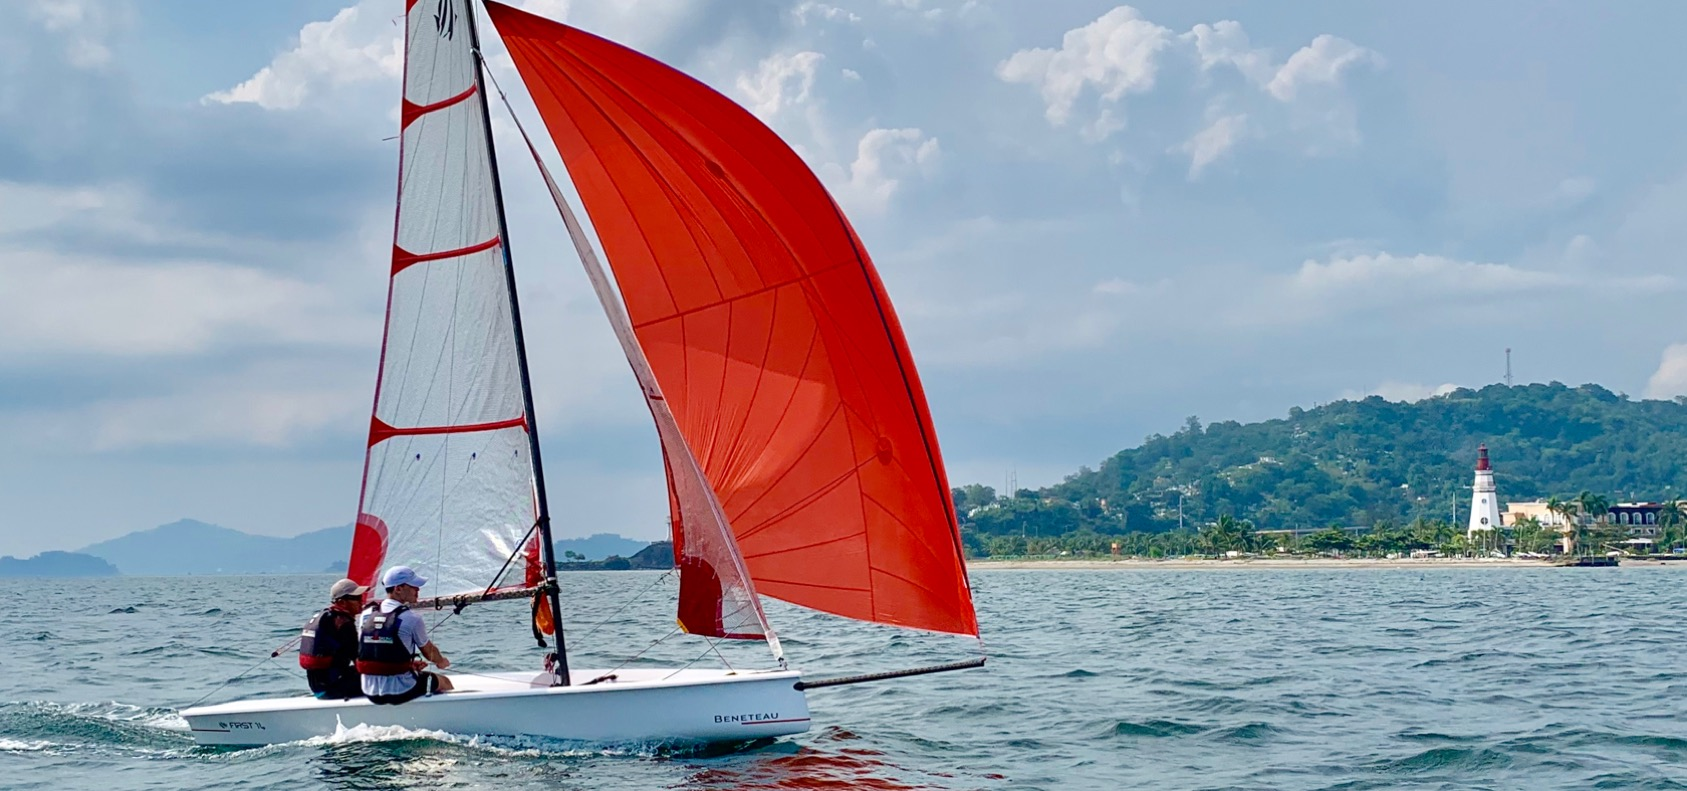 Great Tailwinds for Philippine Sailing as Europa Sailing School Opens in Subic